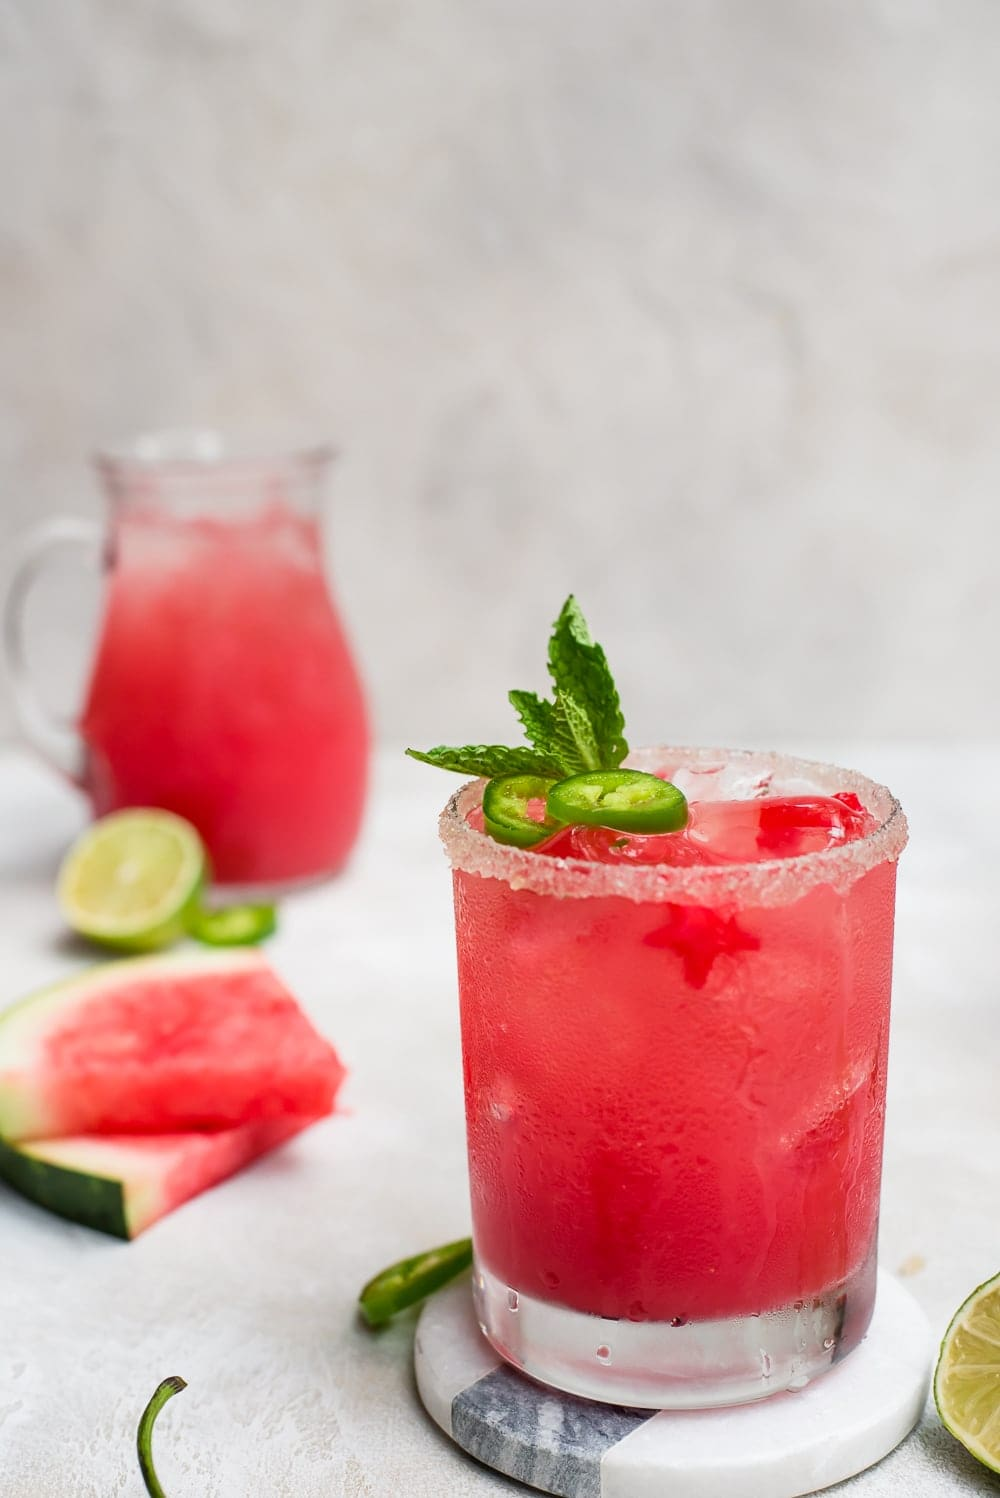 watermelon margarita next to sliced watermelon